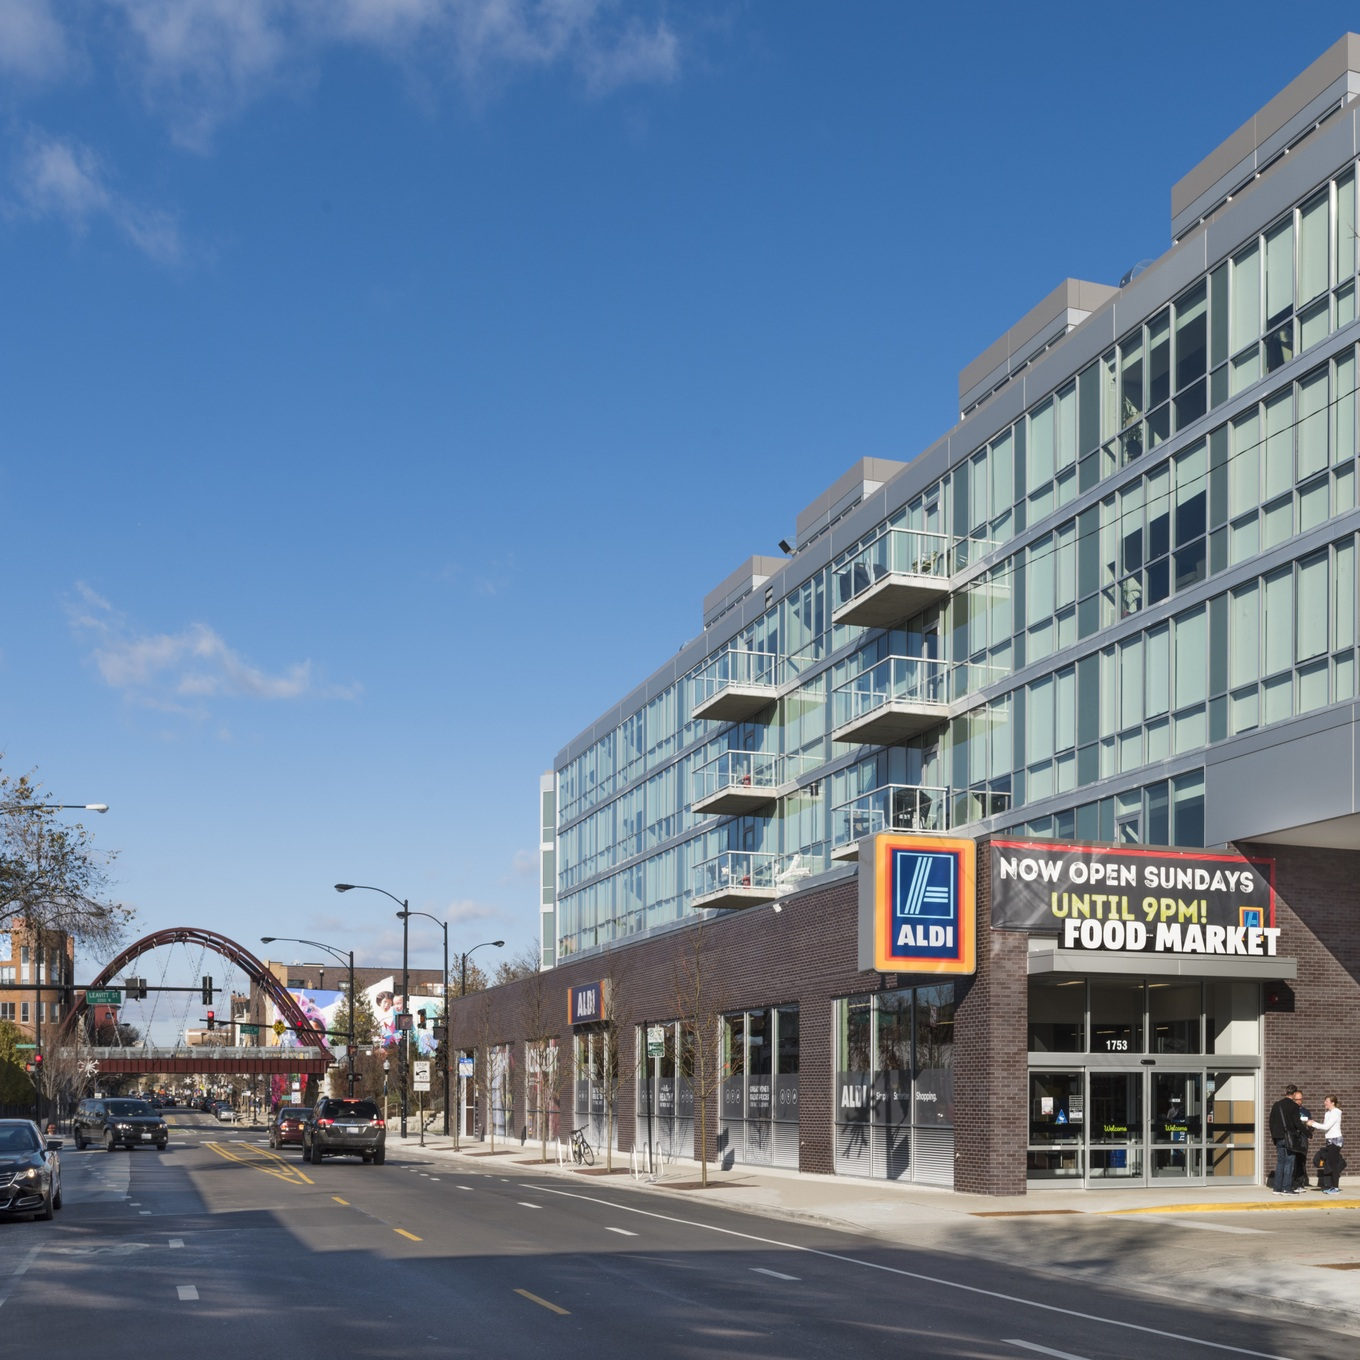 LEGACY RETAILERS CAN PROVIDE THE FINISHING TOUCH TO NEW MIXED-USE DEVELOPMENTS - BISNOW > 2.27.2019